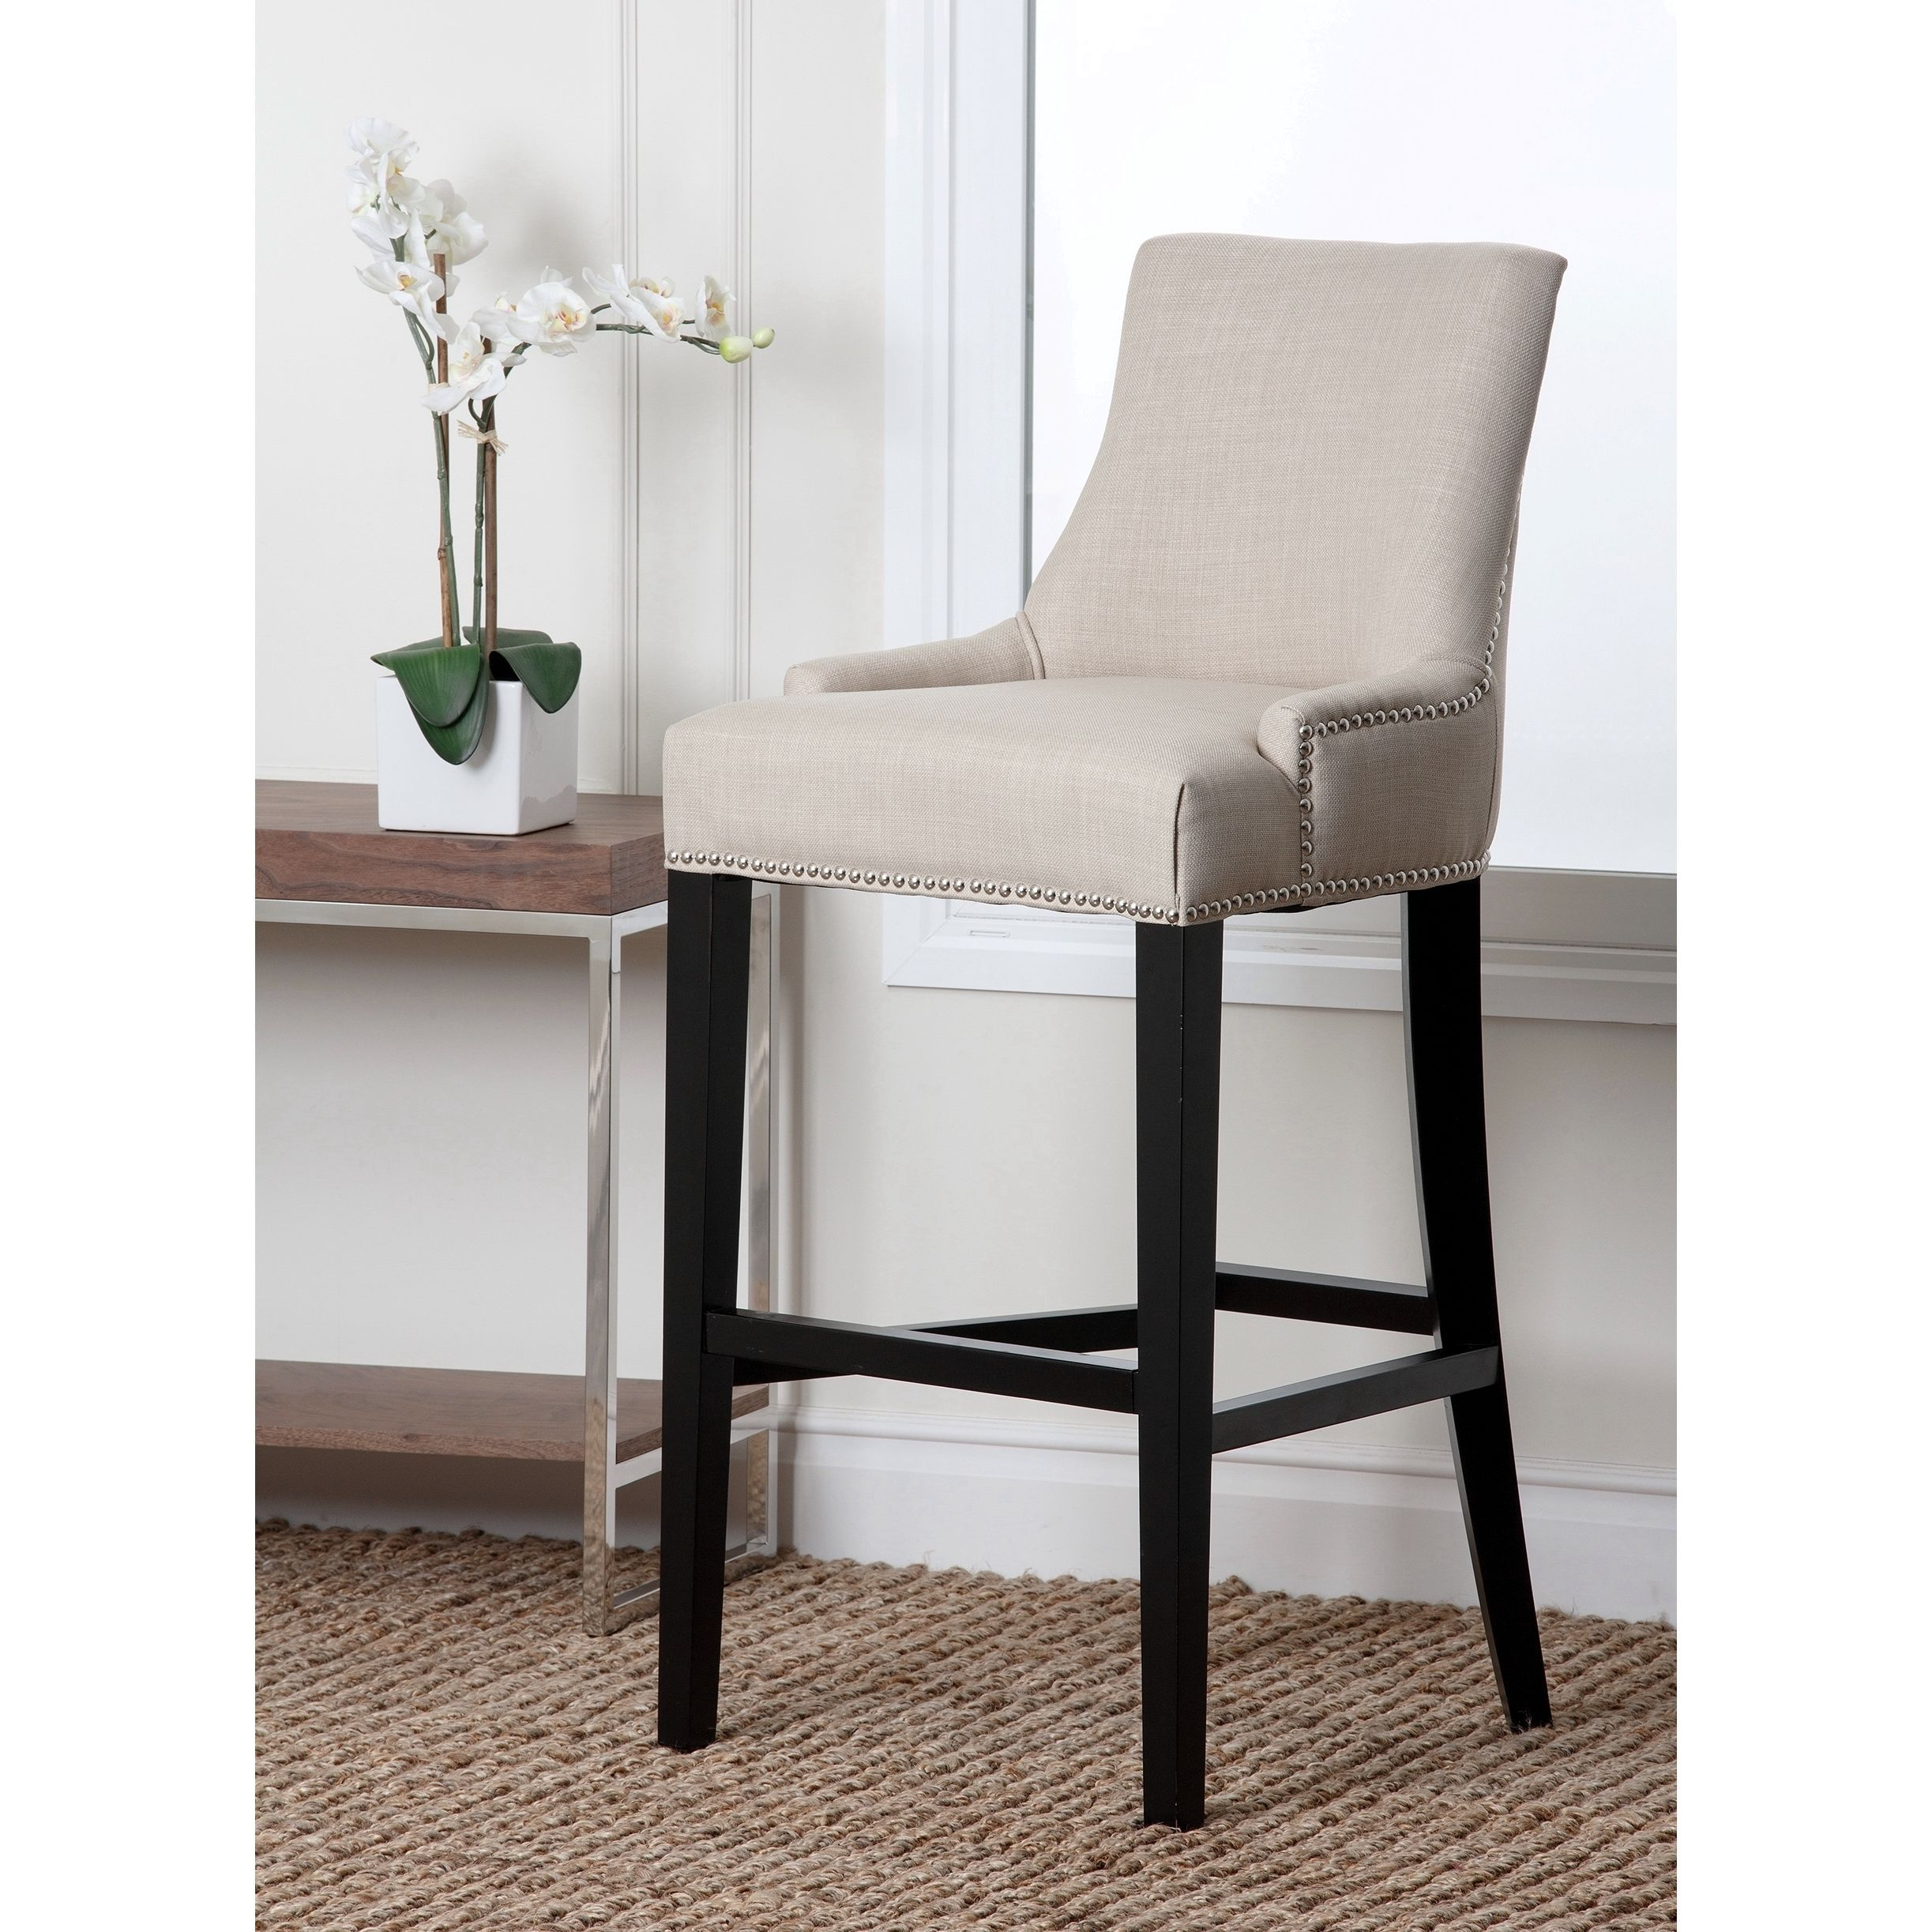 The Curved Arms And The Nailhead Trim Of This Bar Stool Present A Very  Comfortable,